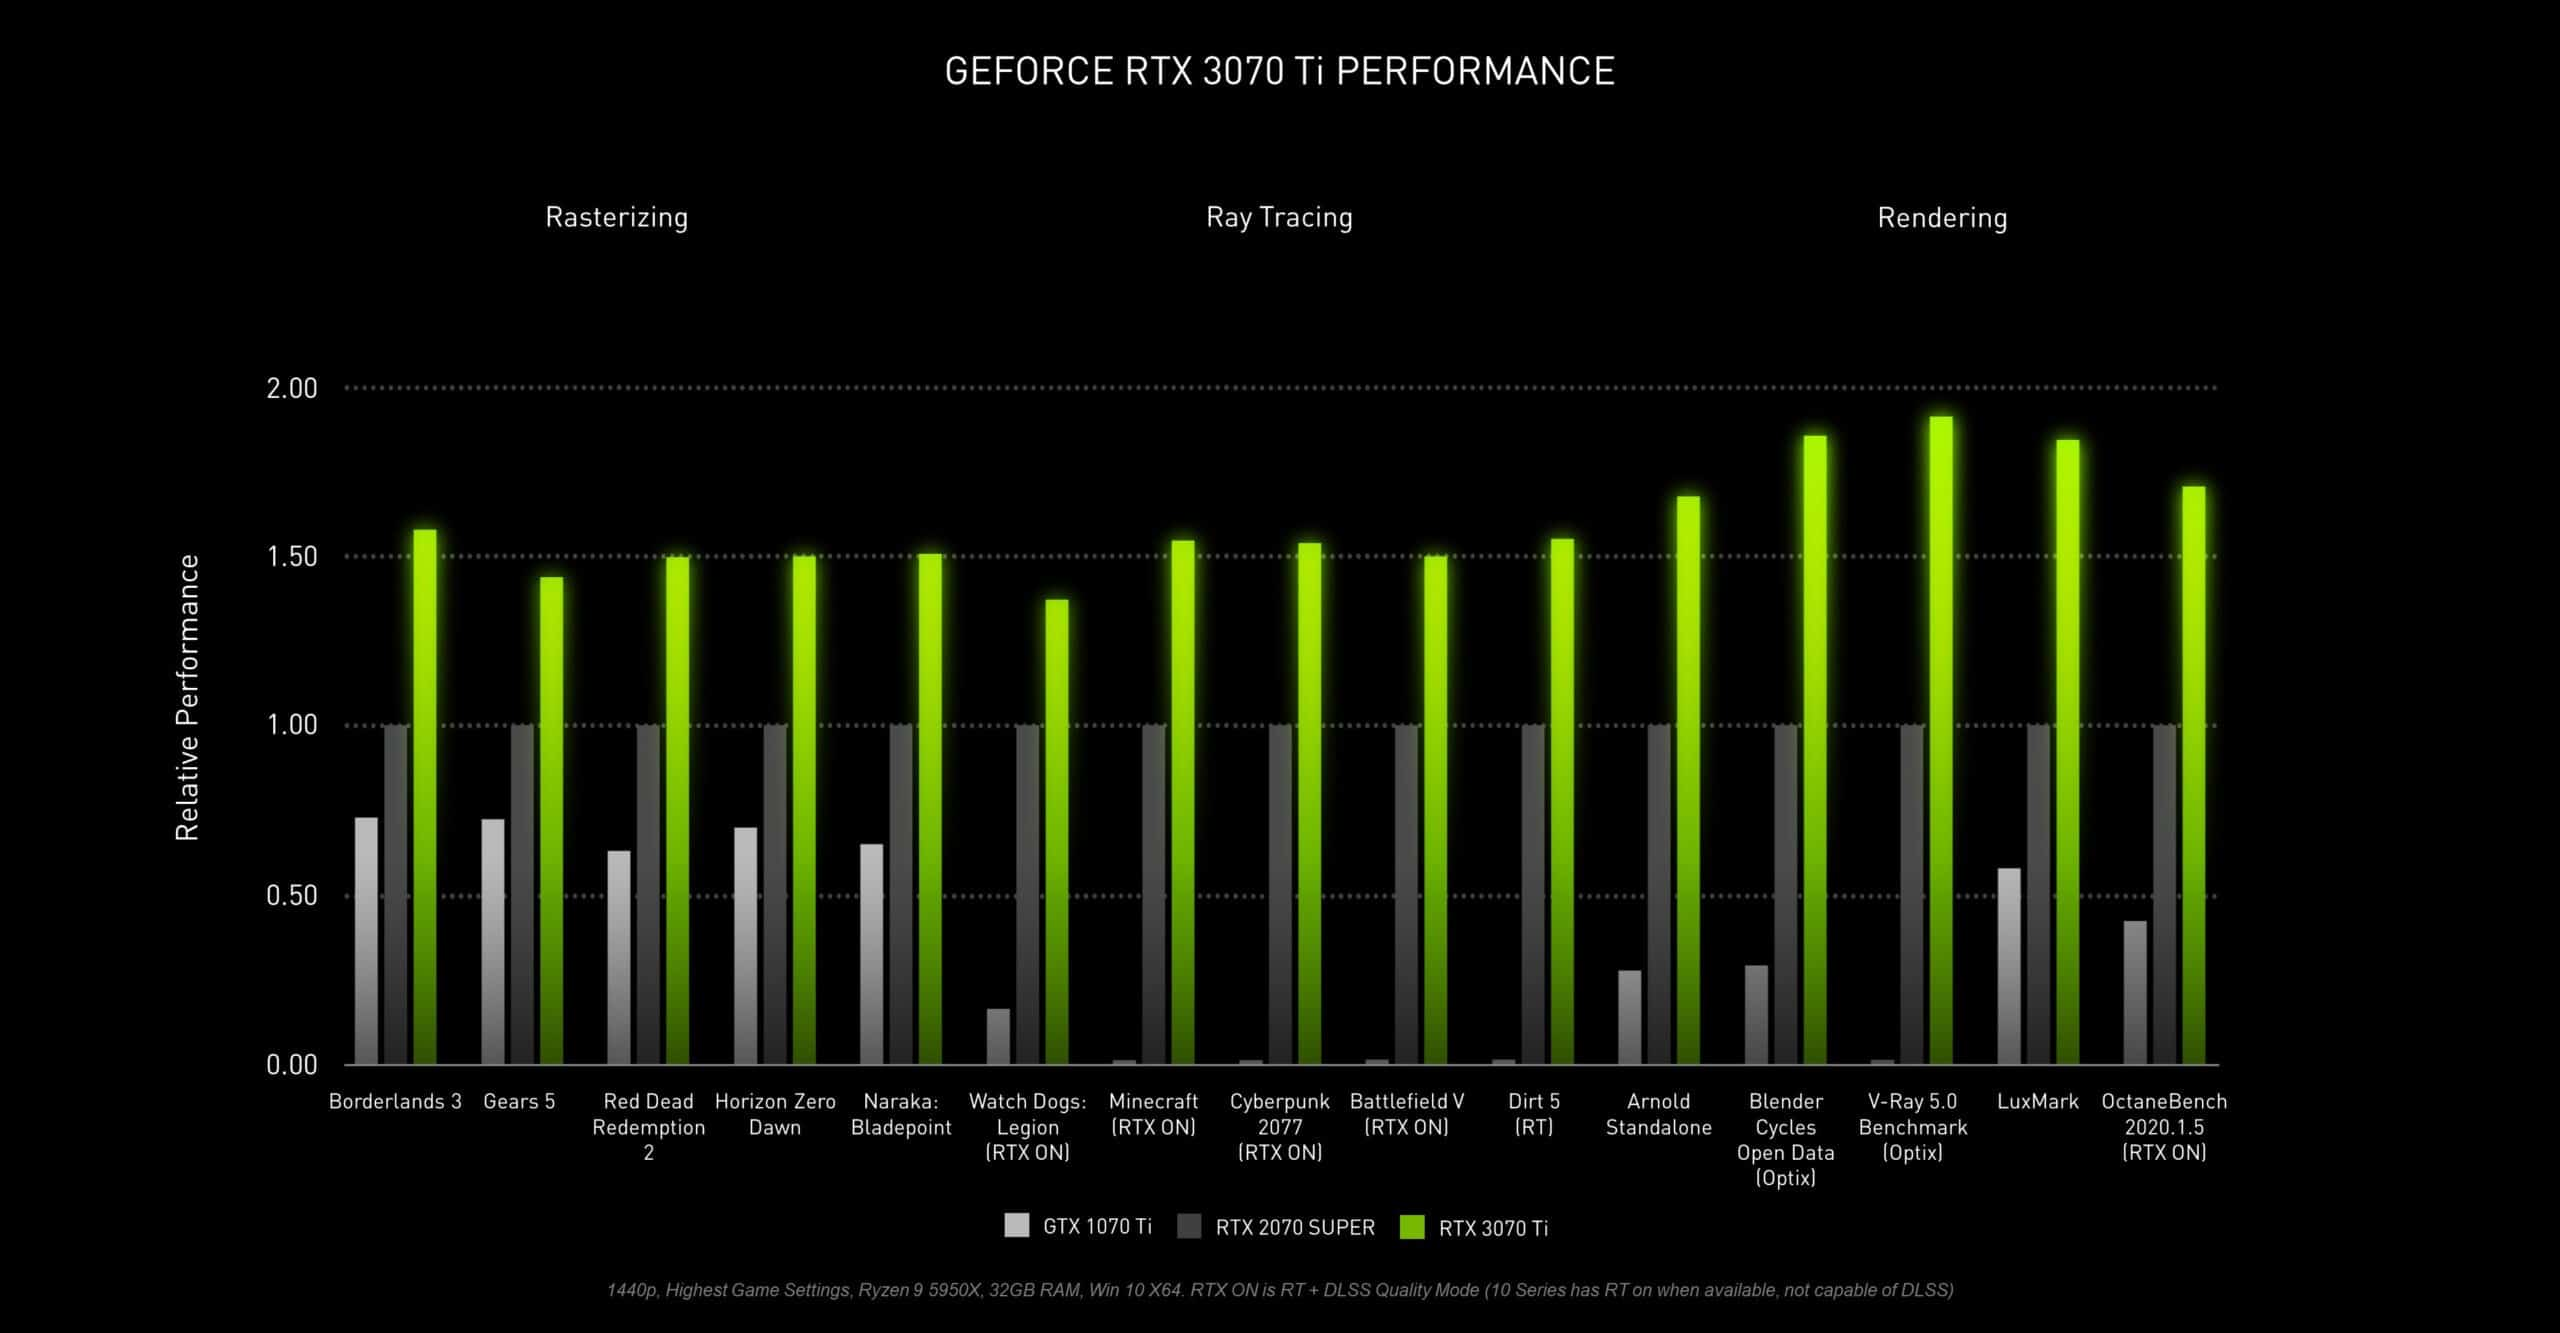 How good is Nvidia's GeForce RTX 3070 Ti video card?